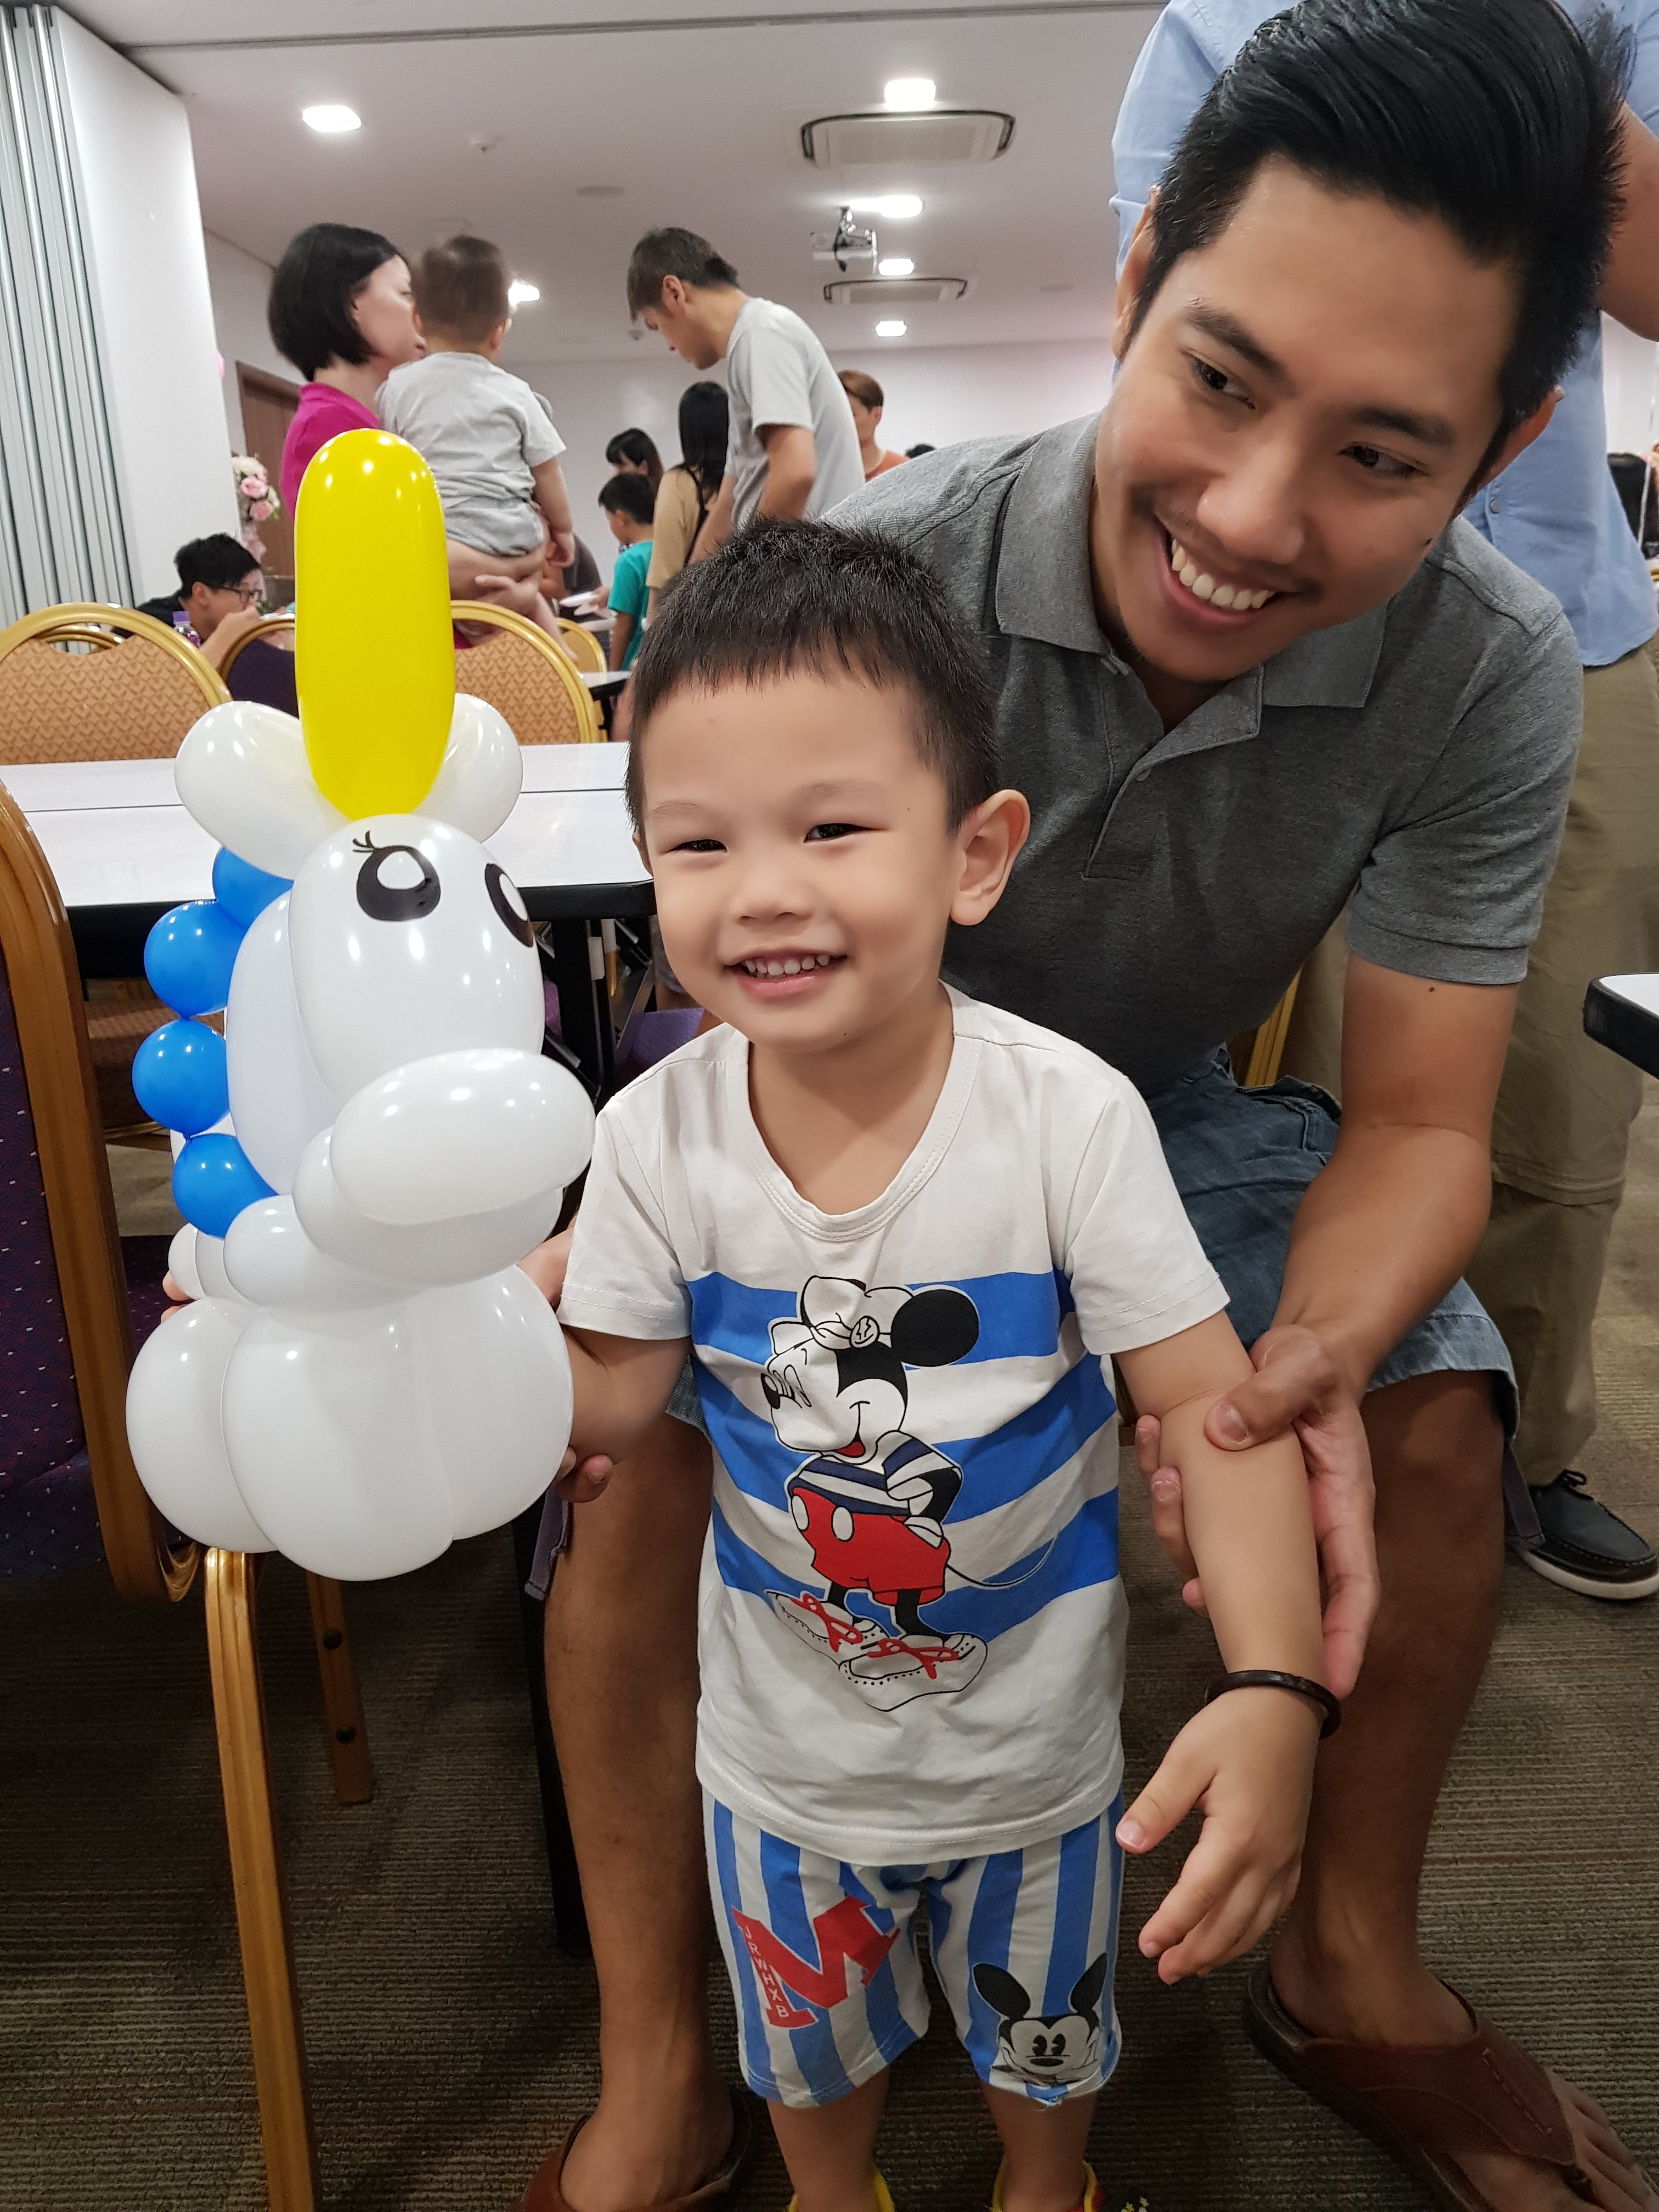 , A really fun balloon sculpting session for a birthday party!, Singapore Balloon Decoration Services - Balloon Workshop and Balloon Sculpting